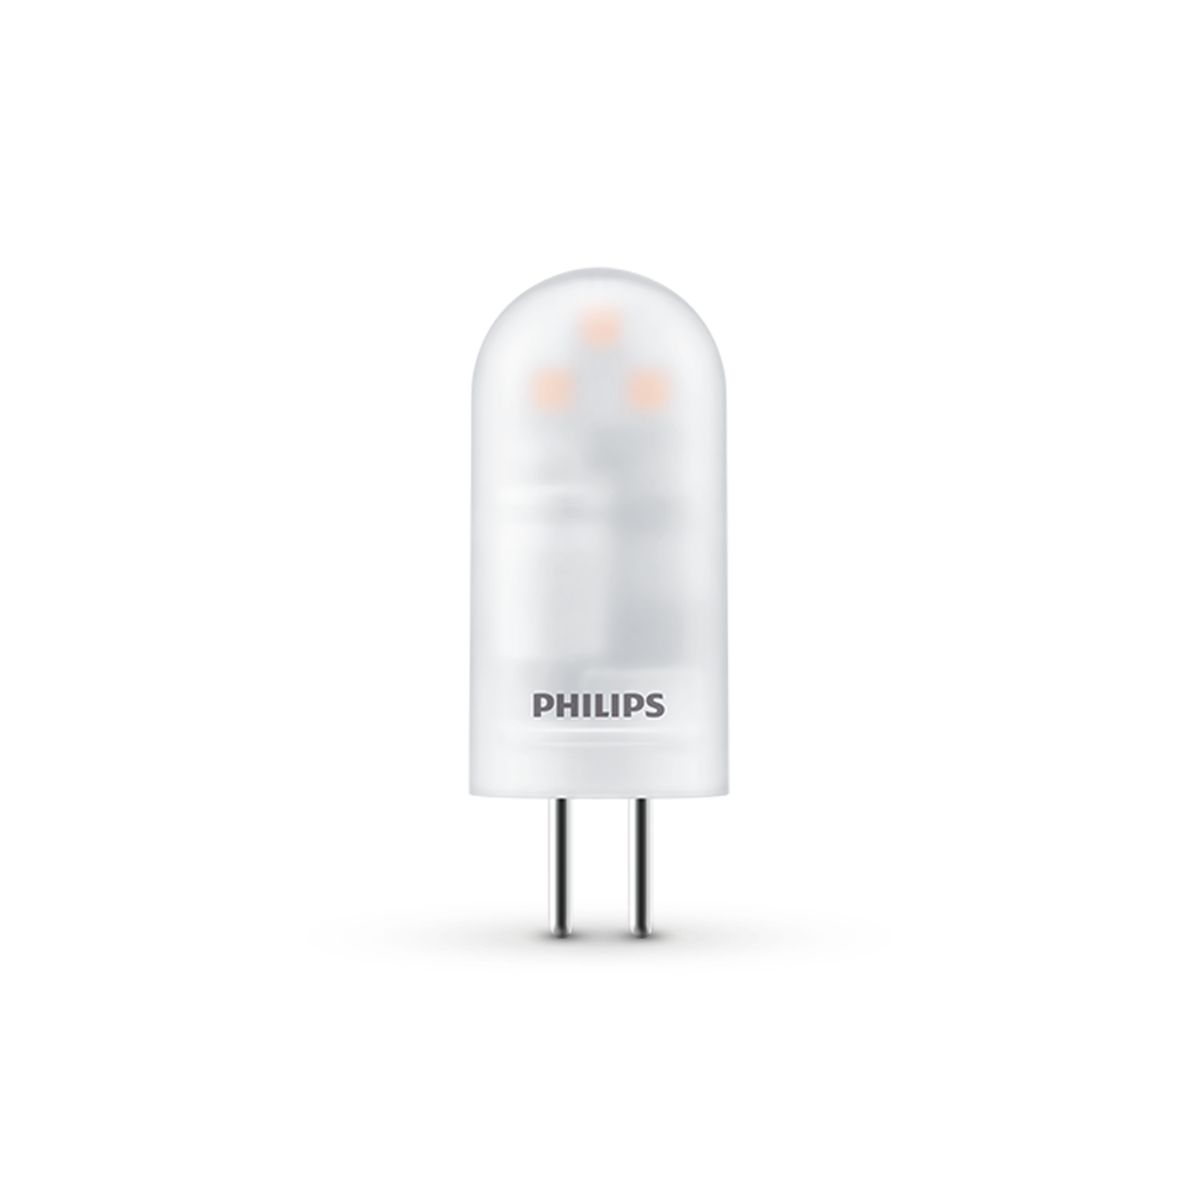 Light Bulbs Online Led Light Spots And Light Bulbs Philips Lighting